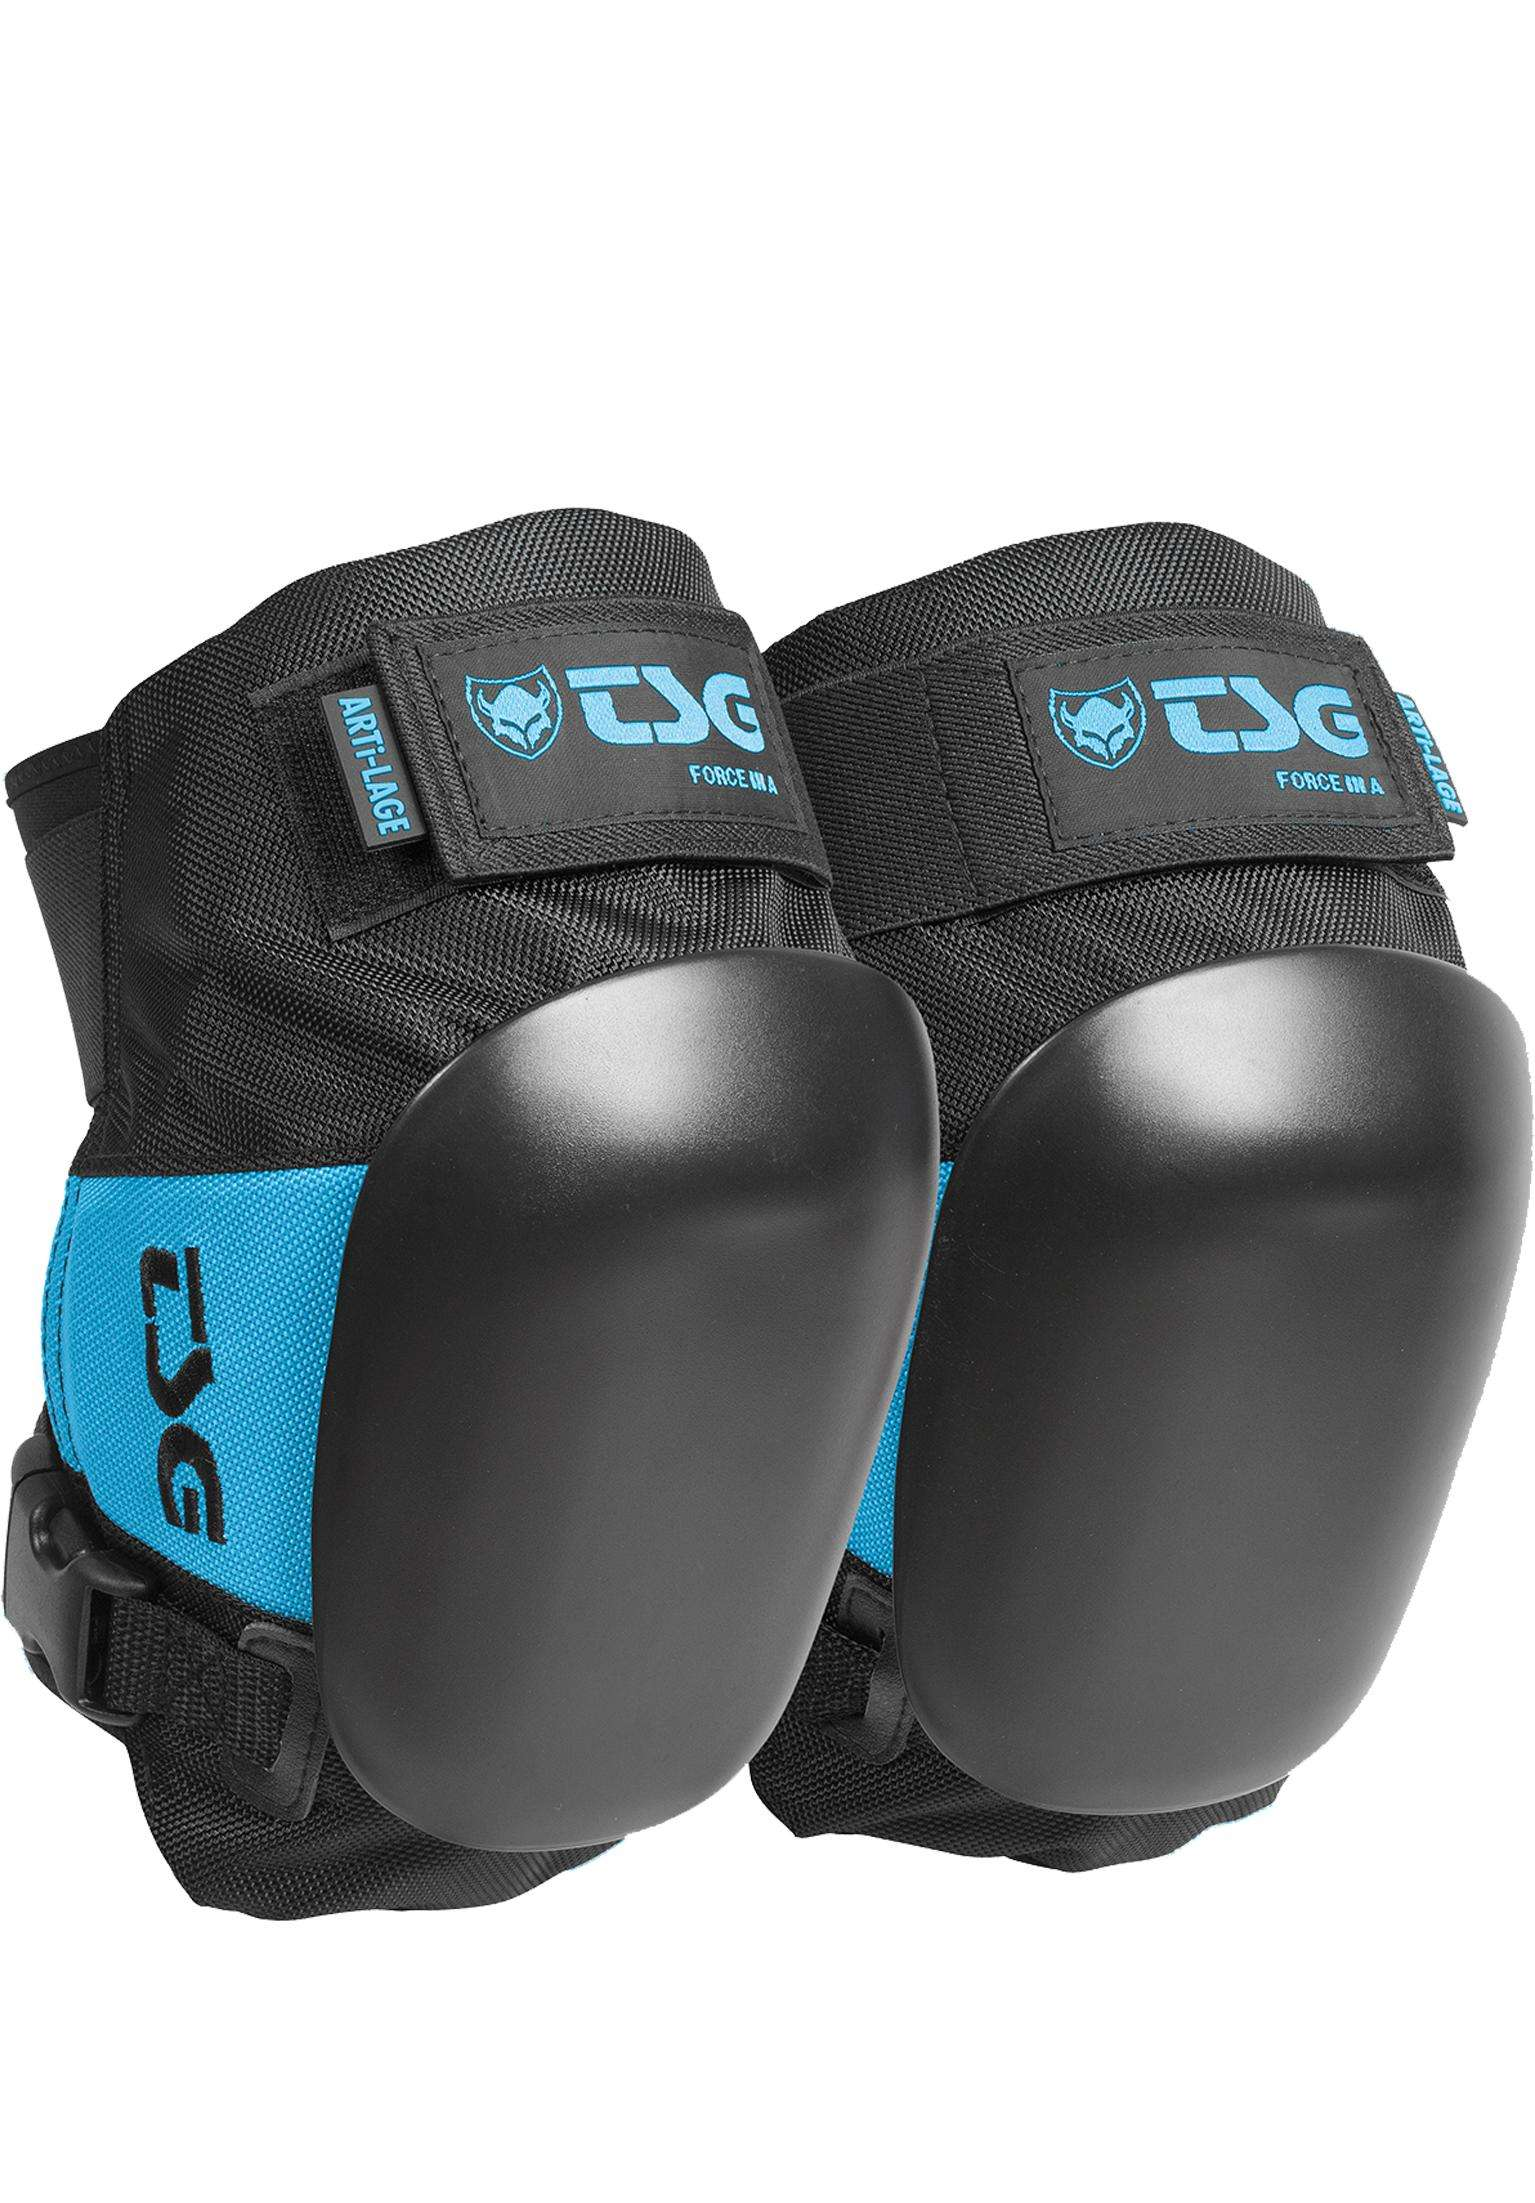 tsg ginocchiere  Knee Pads Force III A TSG Ginocchiere e parastinchi | Titus